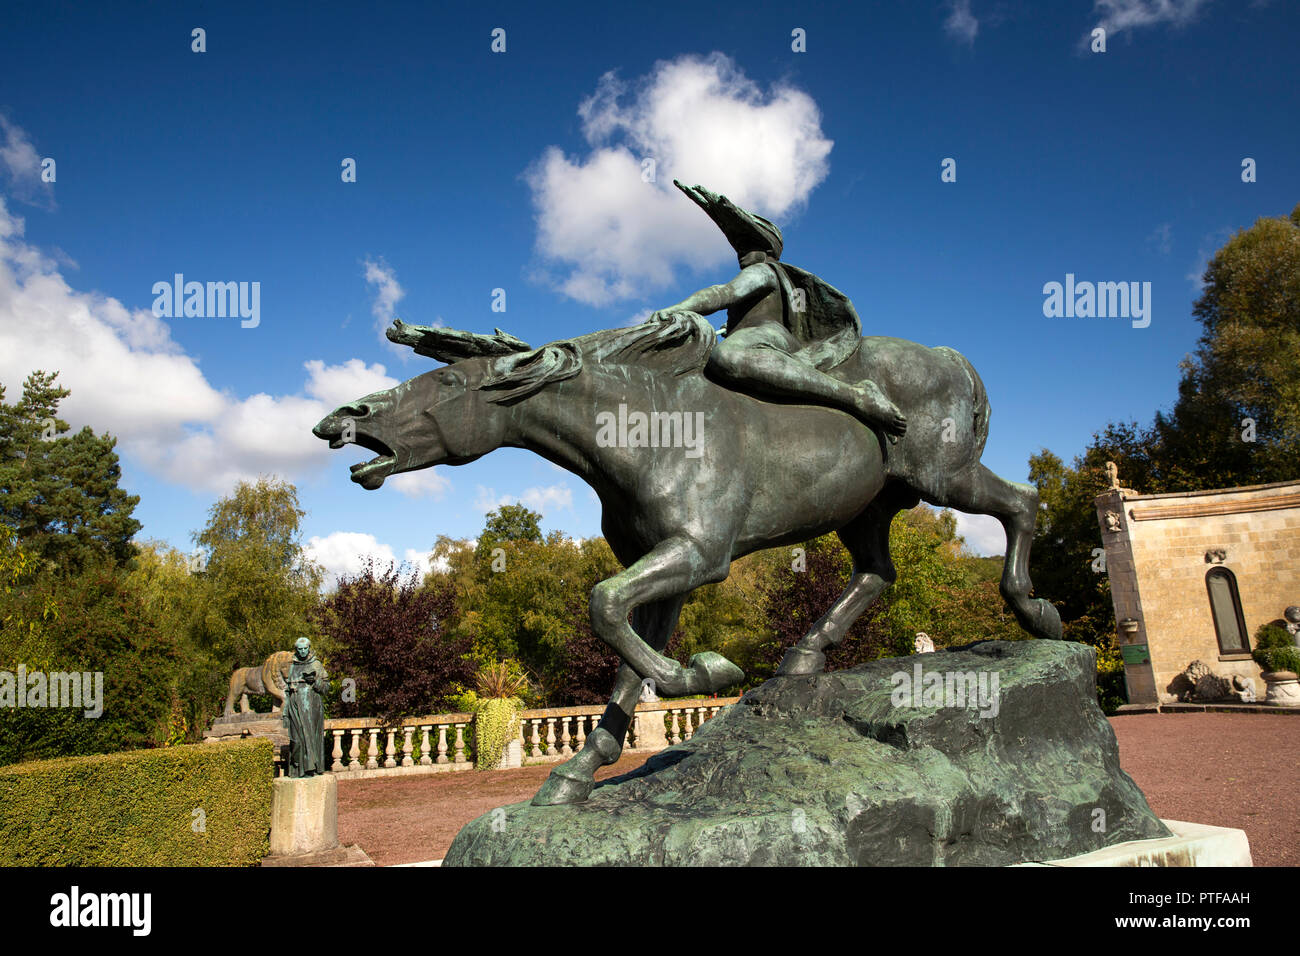 England, Berkshire,  Lower Basildon, Beale Park Wildlife Park & Gardens Wild Horse of the Valkyrie statue from the Leverhulme collection in front of 1 Stock Photo